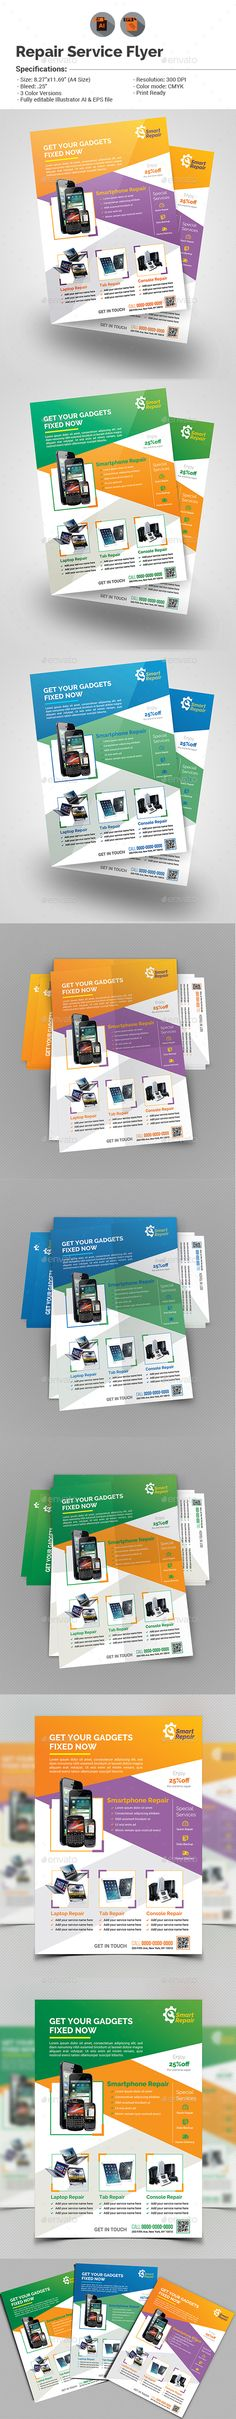 Repair Service Flyer Template Vector EPS, AI. Download here: http://graphicriver.net/item/repair-service-flyer-template/15504434?ref=ksioks